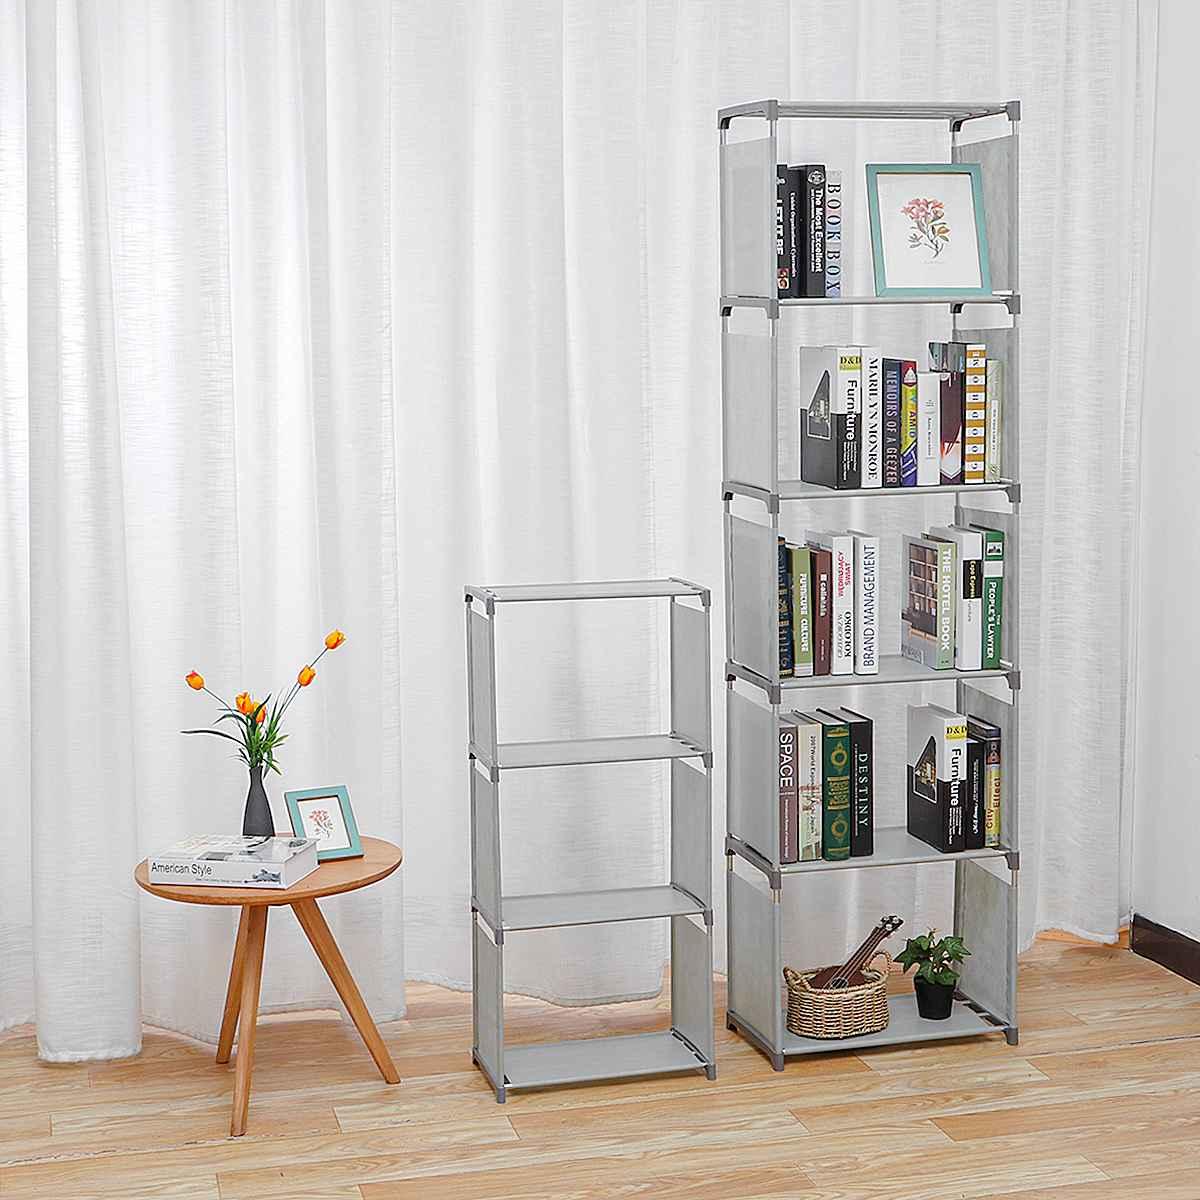 4/6 Tiers Cube Bookshelf Storage Shelves Standing Cabinet Display Rack Living Room Organizer Office Bookcase Home Furniture